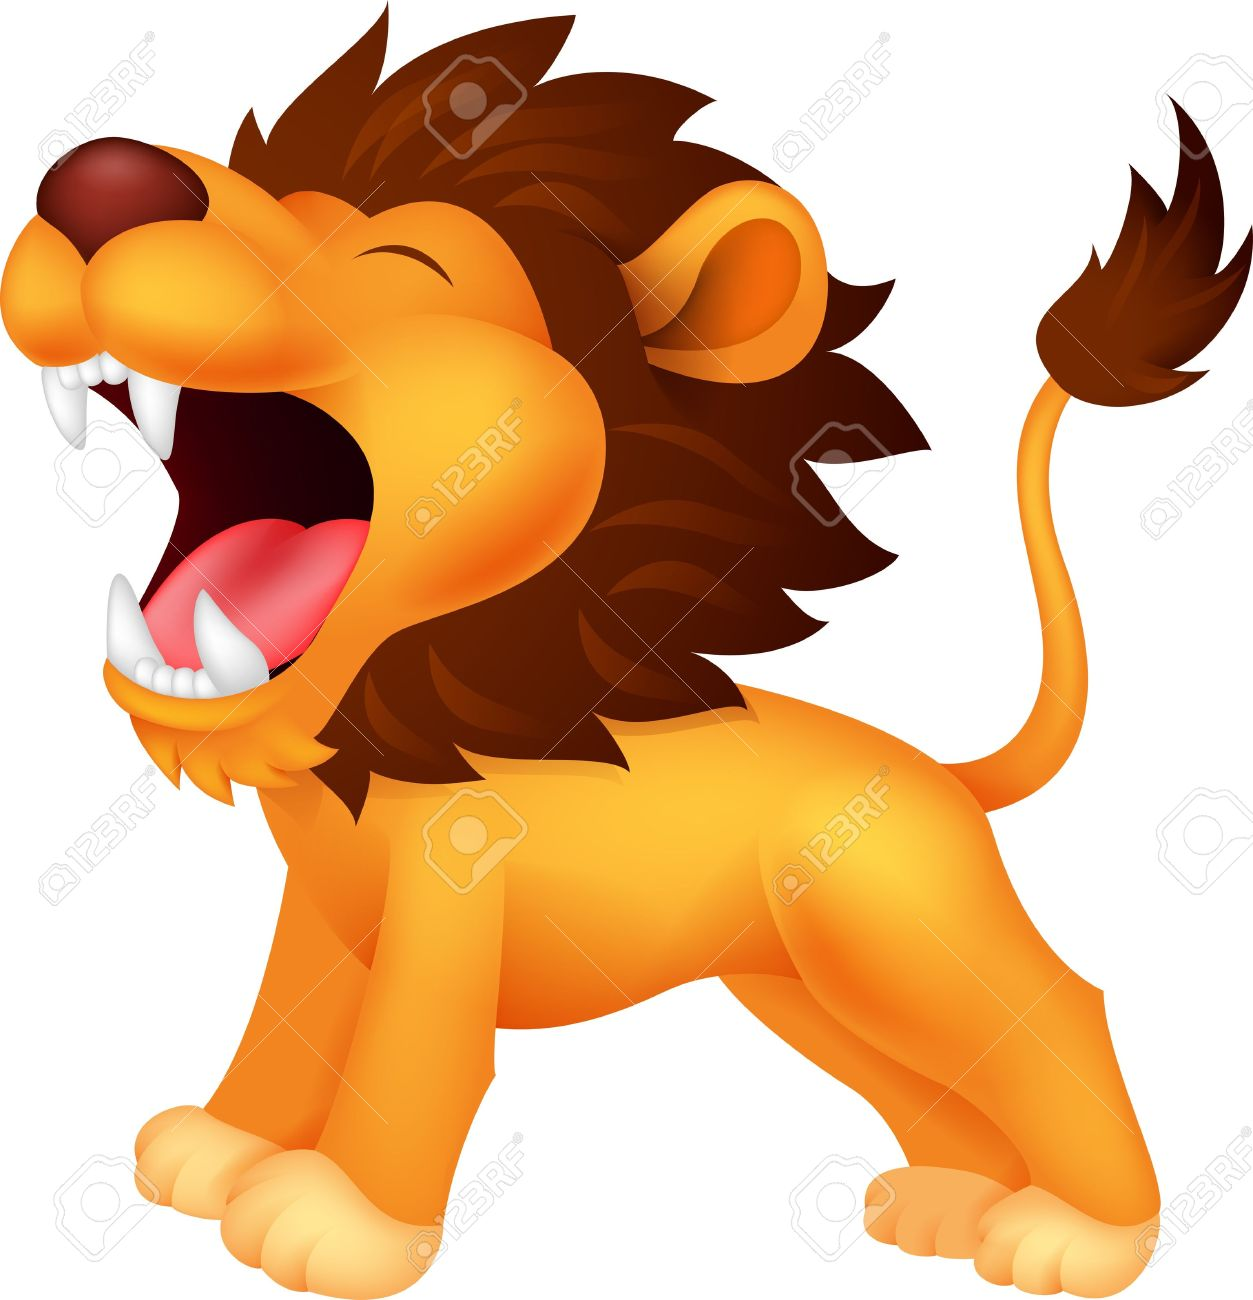 cute lion clipart at getdrawings com free for personal use cute rh getdrawings com lion clip art and graphics lion clip art and graphics